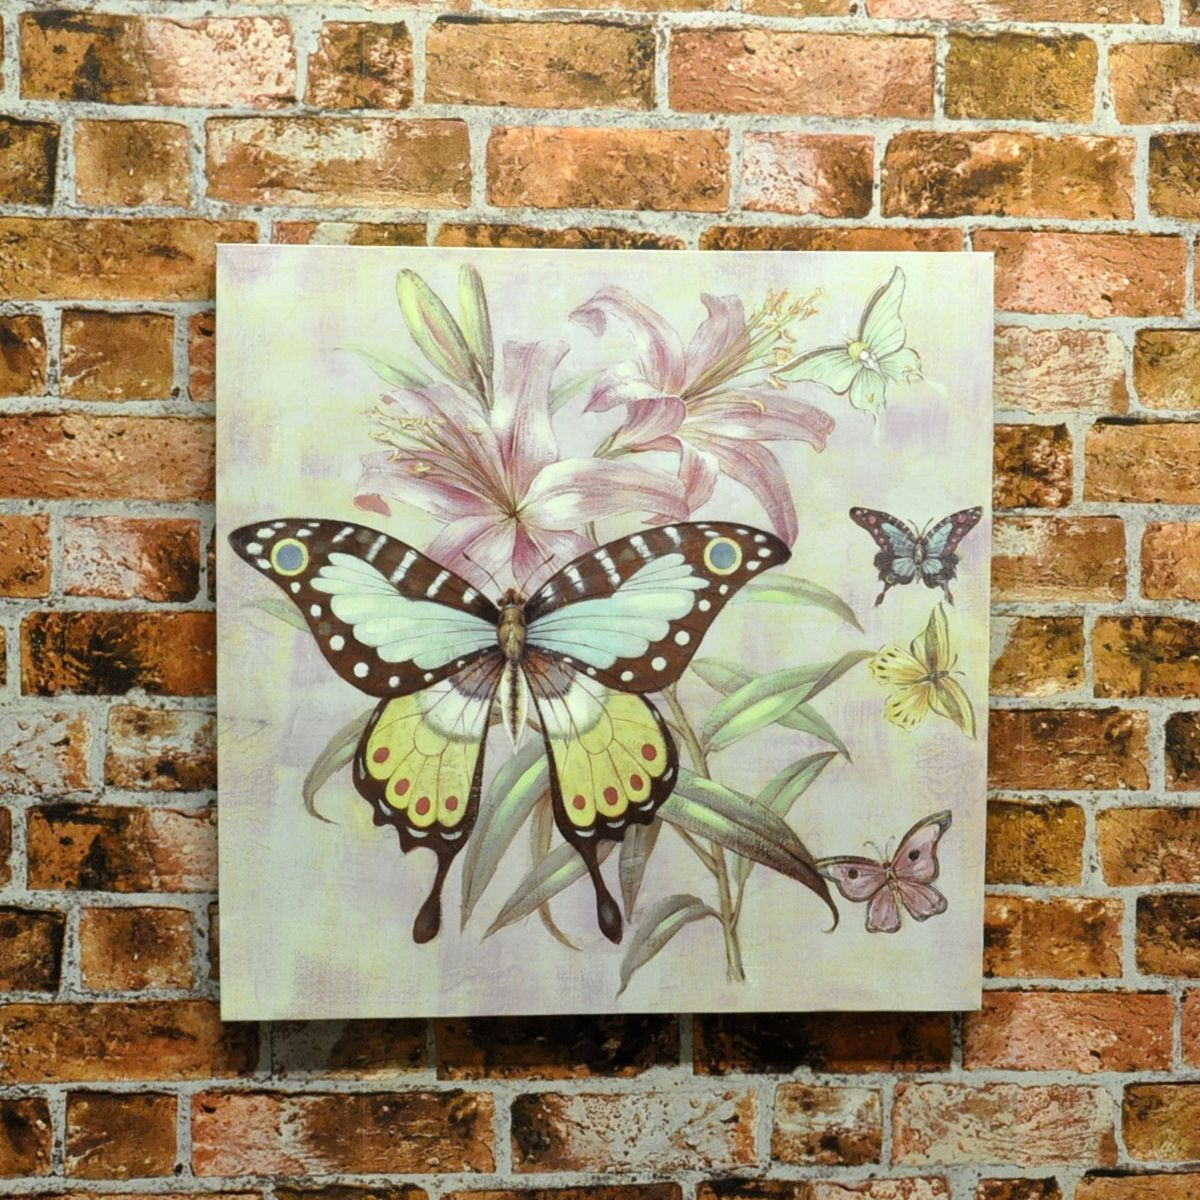 Set 2 Butterfly & Flowers Wood Board Canvas Print Picture